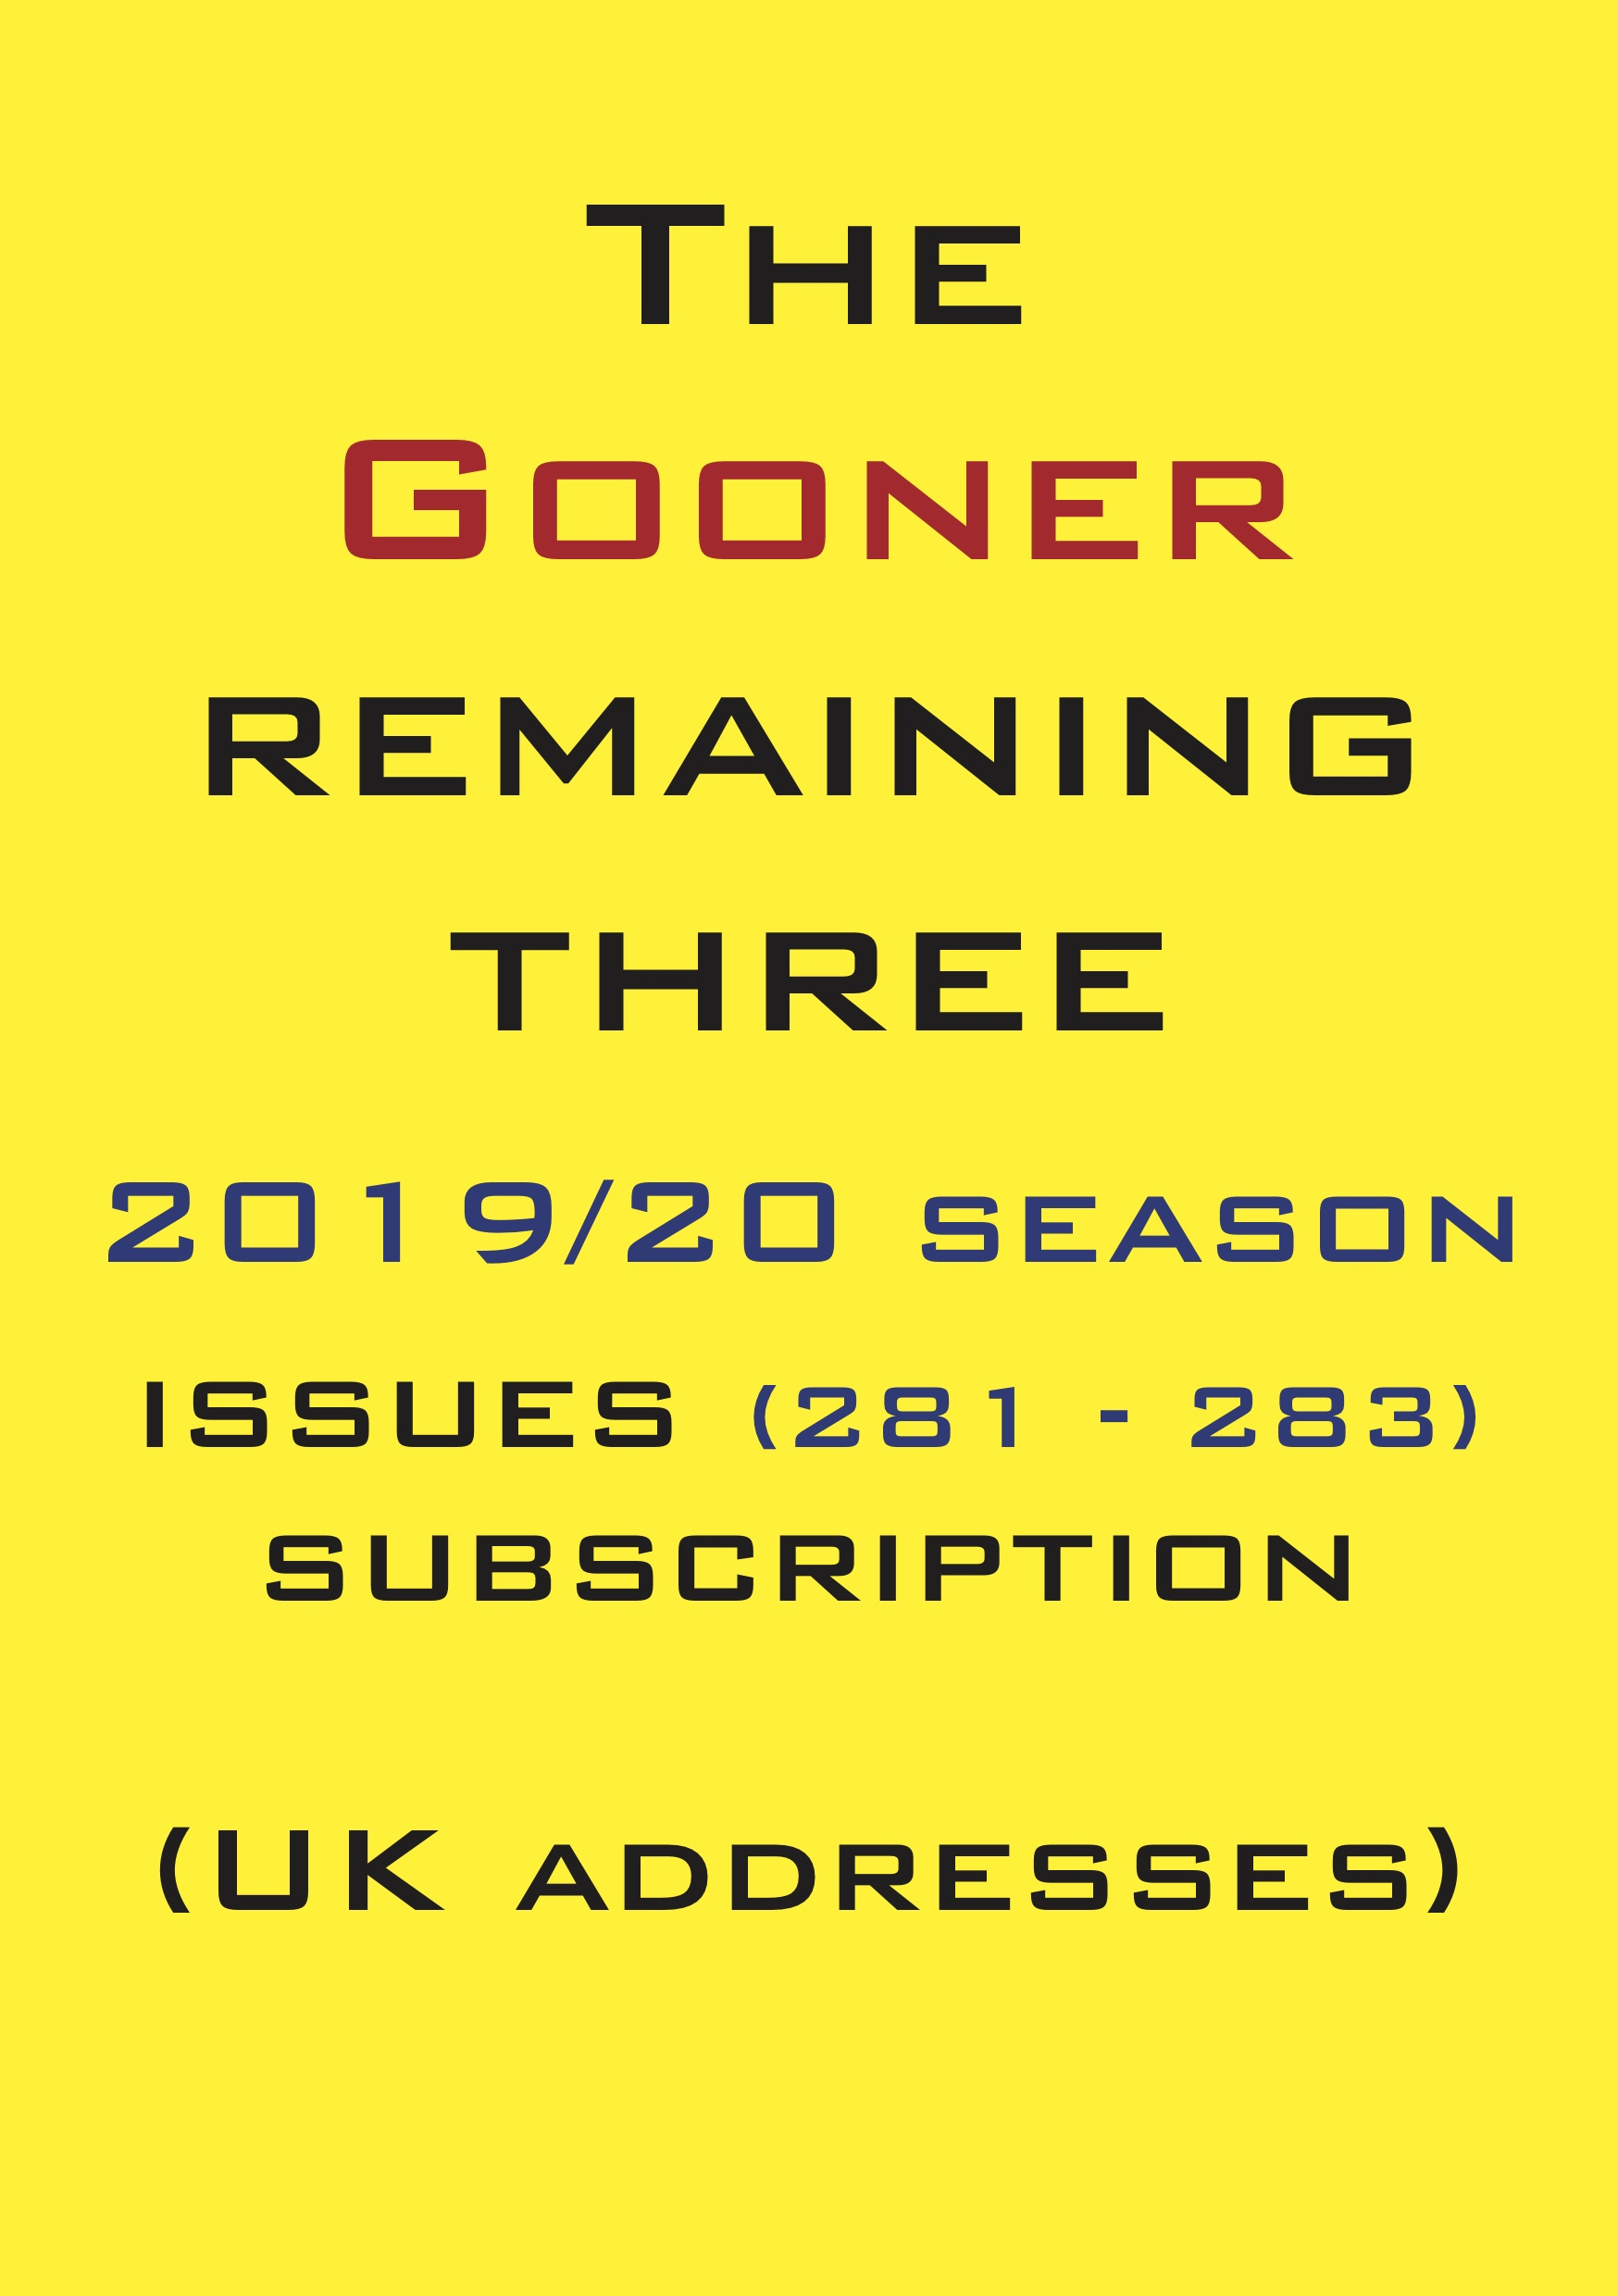 1e. The Gooner! - 3 remaining 2019/20 issues subscription UK